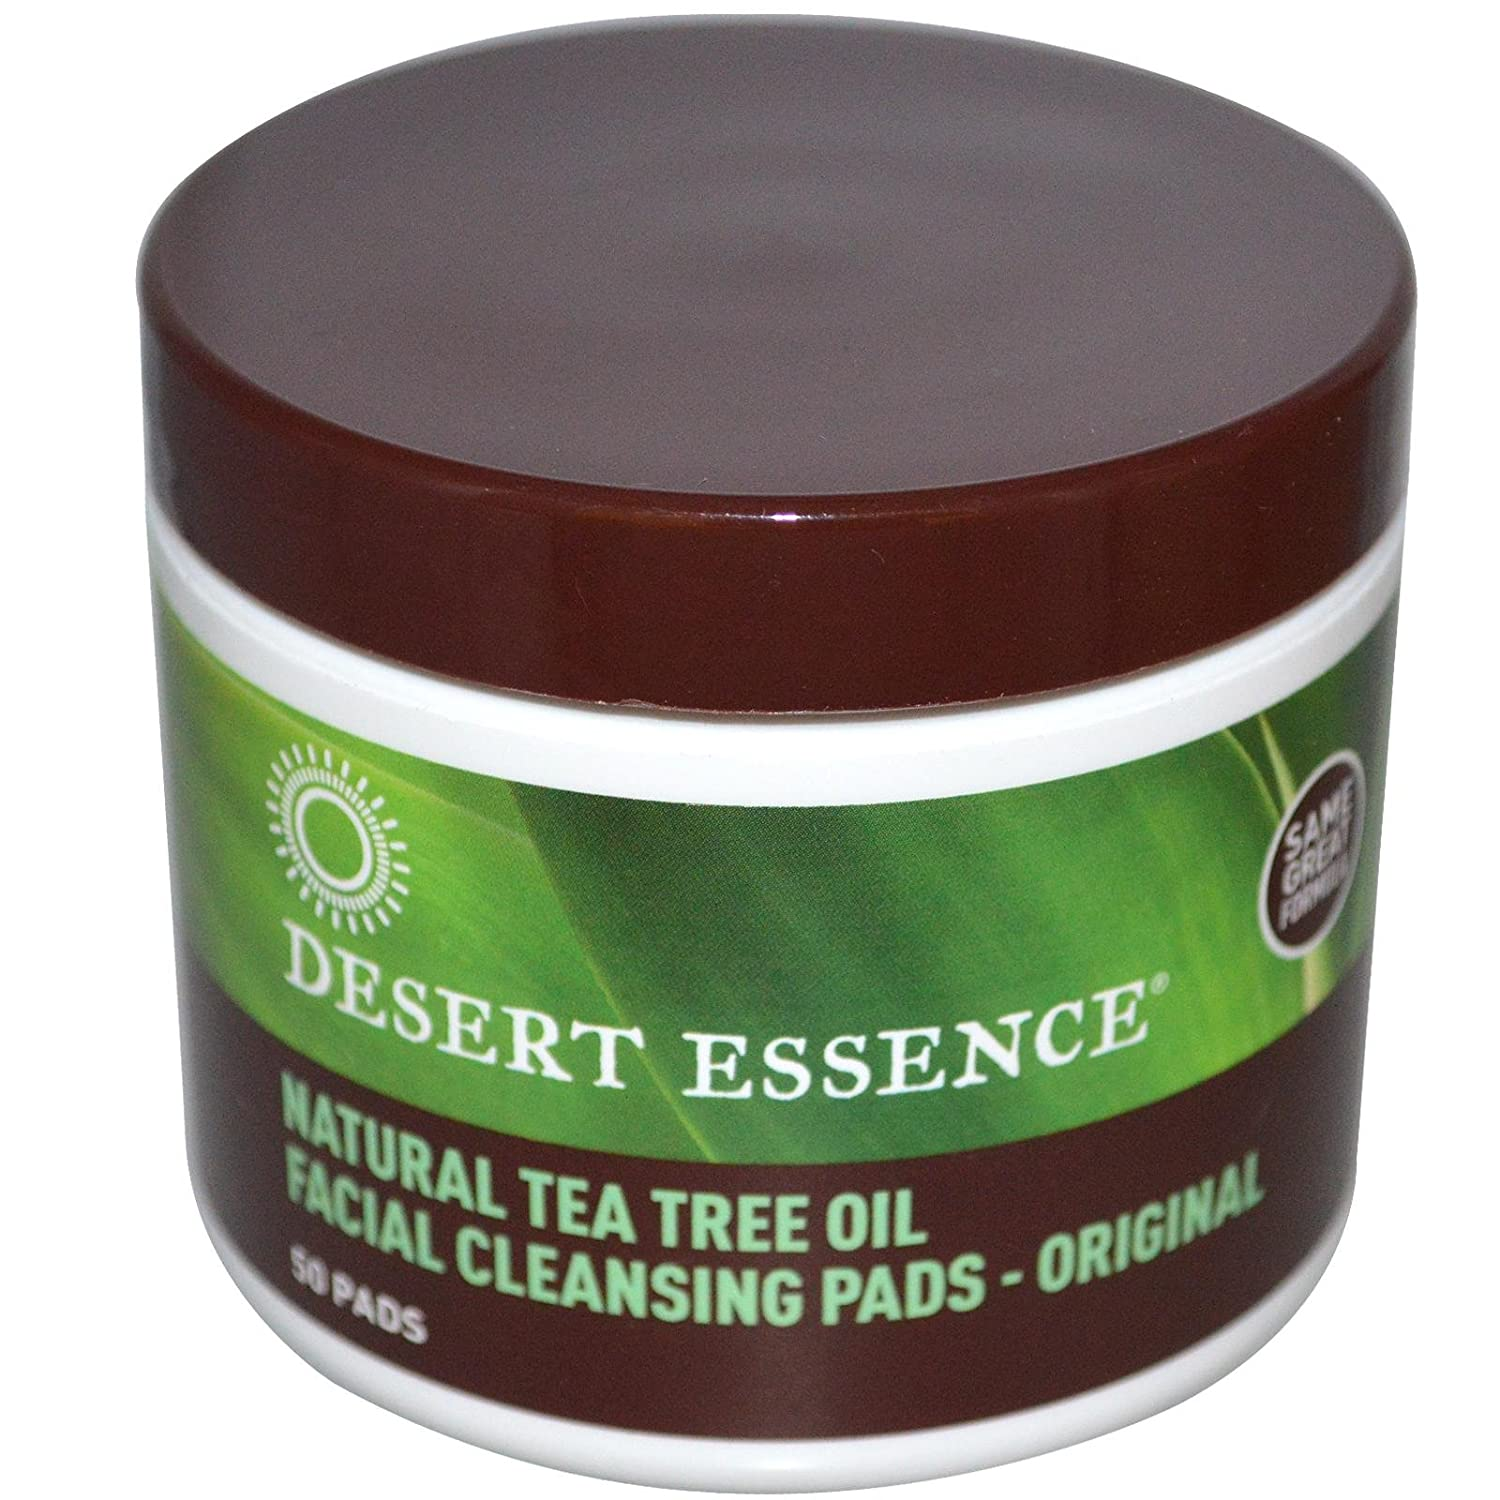 Desert Essence Natural Cleansing Pads with Tea Tree Oil, 50ct 3260NDE